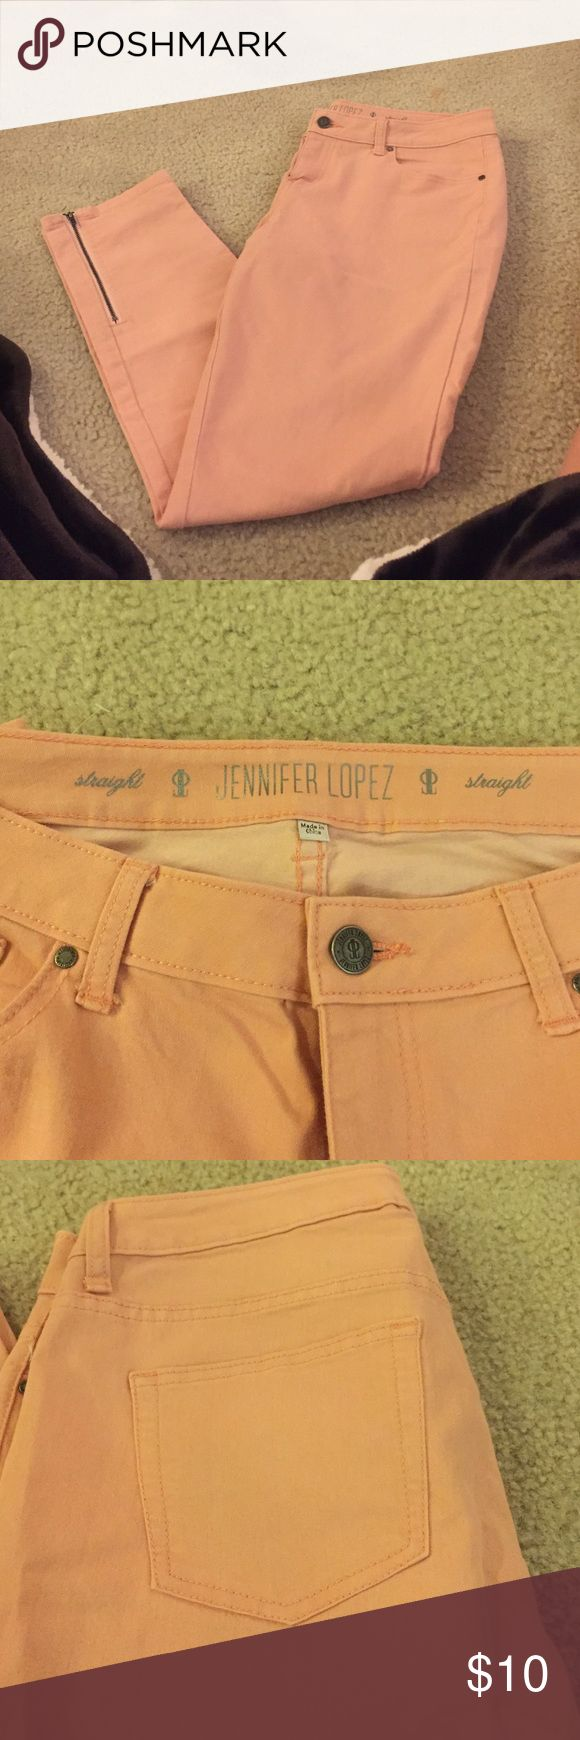 Jennifer Lopez peach pants In perfect condition. Stretchy and comfortable. Straight leg. Peach color Jennifer Lopez Pants Straight Leg